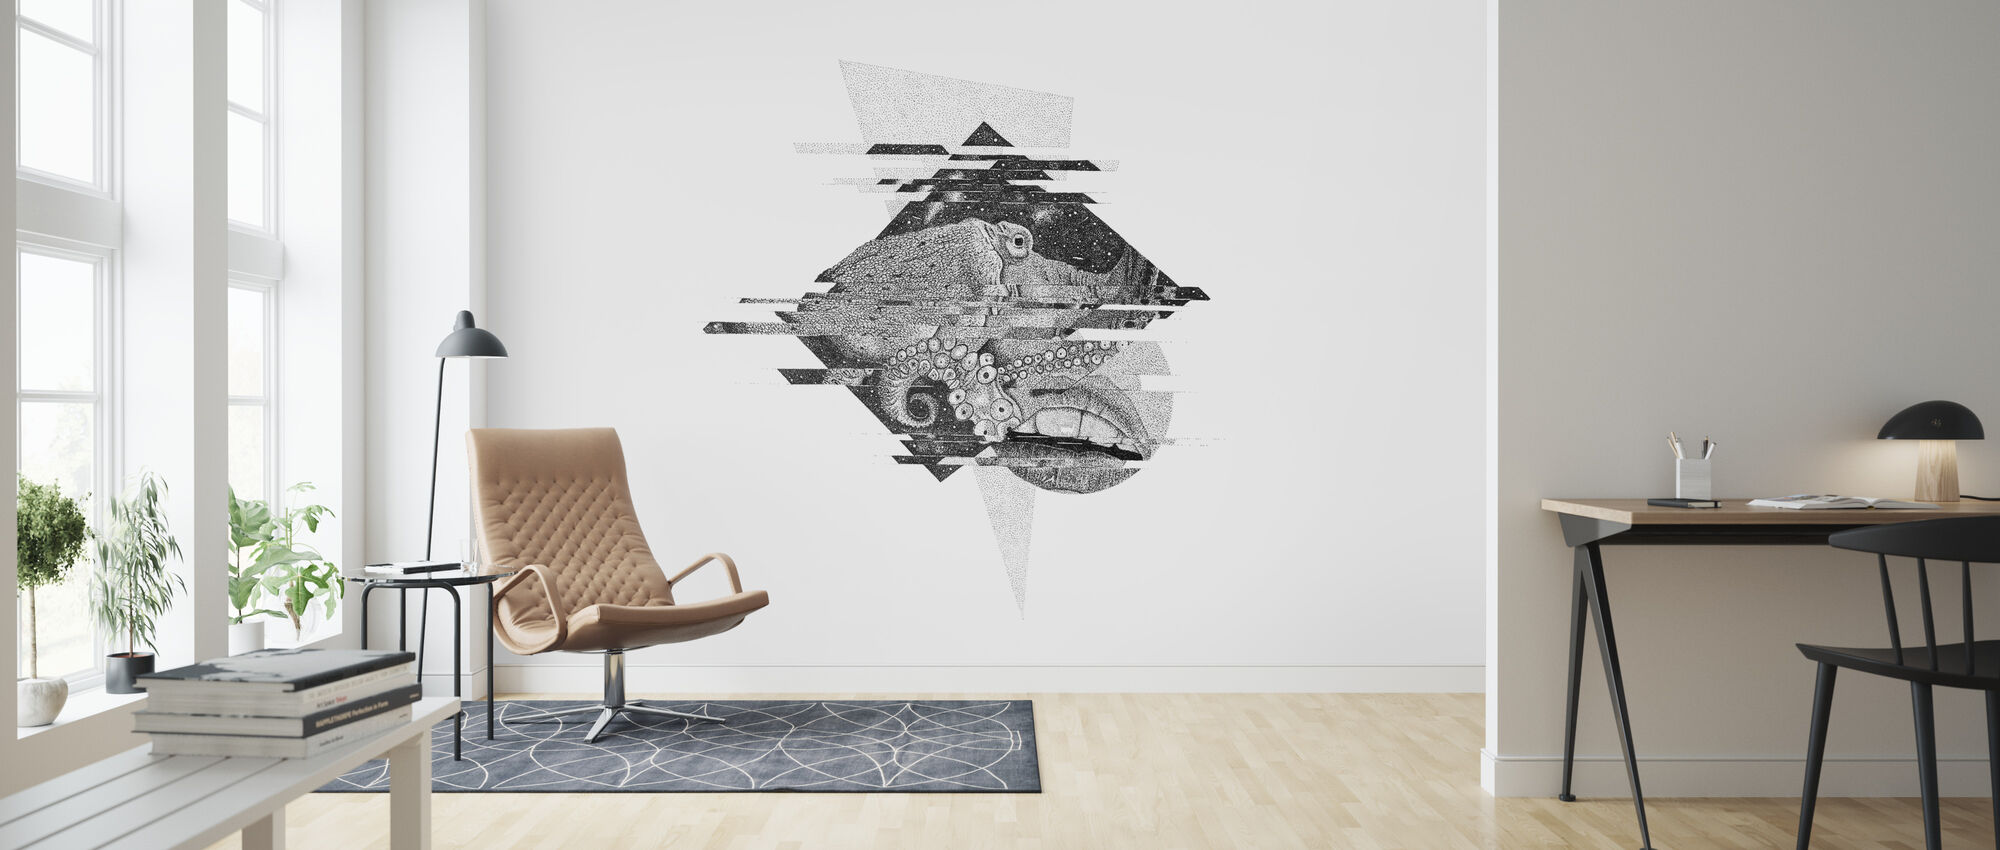 Interrupted Universe I - Wallpaper - Living Room